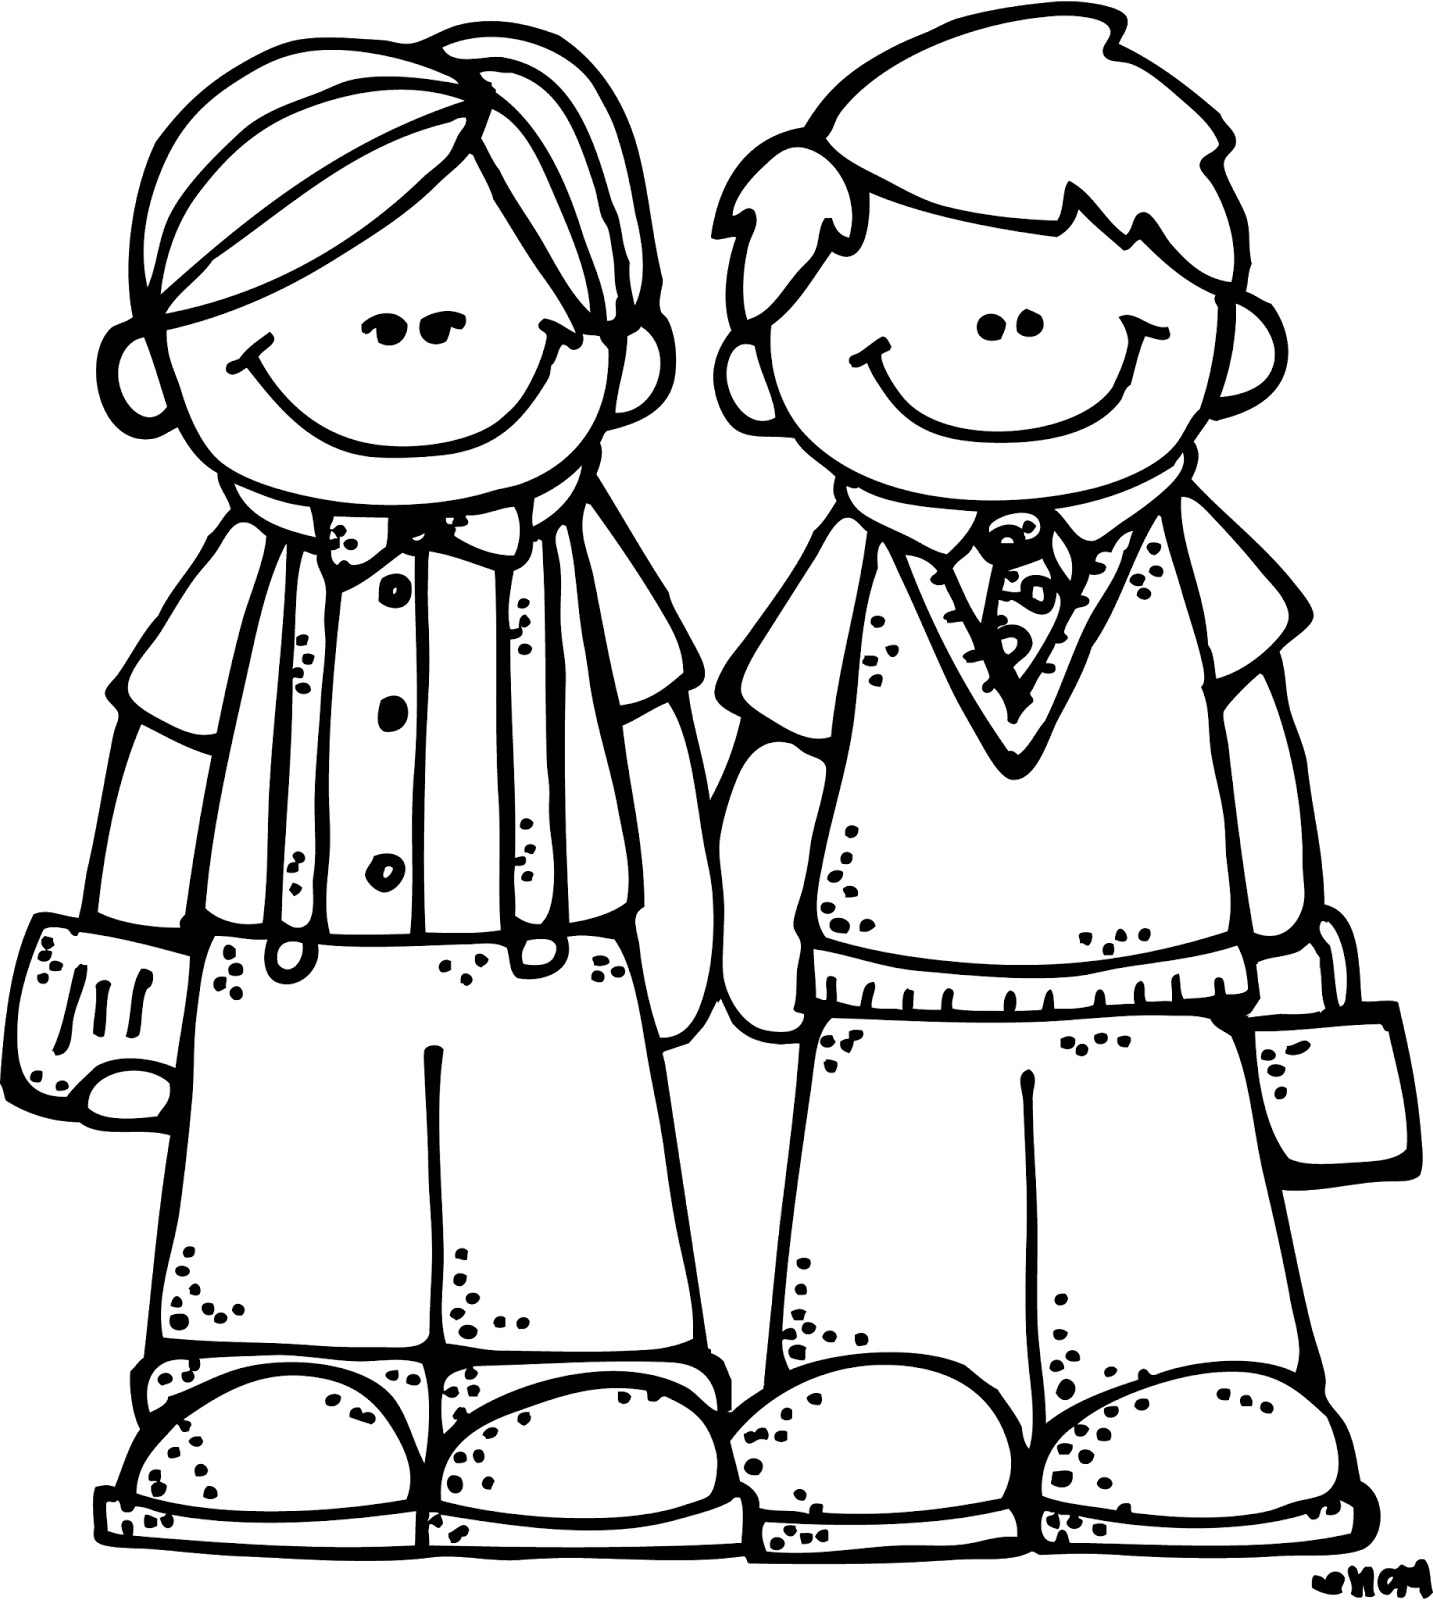 Best friend clipart black and white clip art transparent library Friendship Clipart Black And White | Free download best Friendship ... clip art transparent library